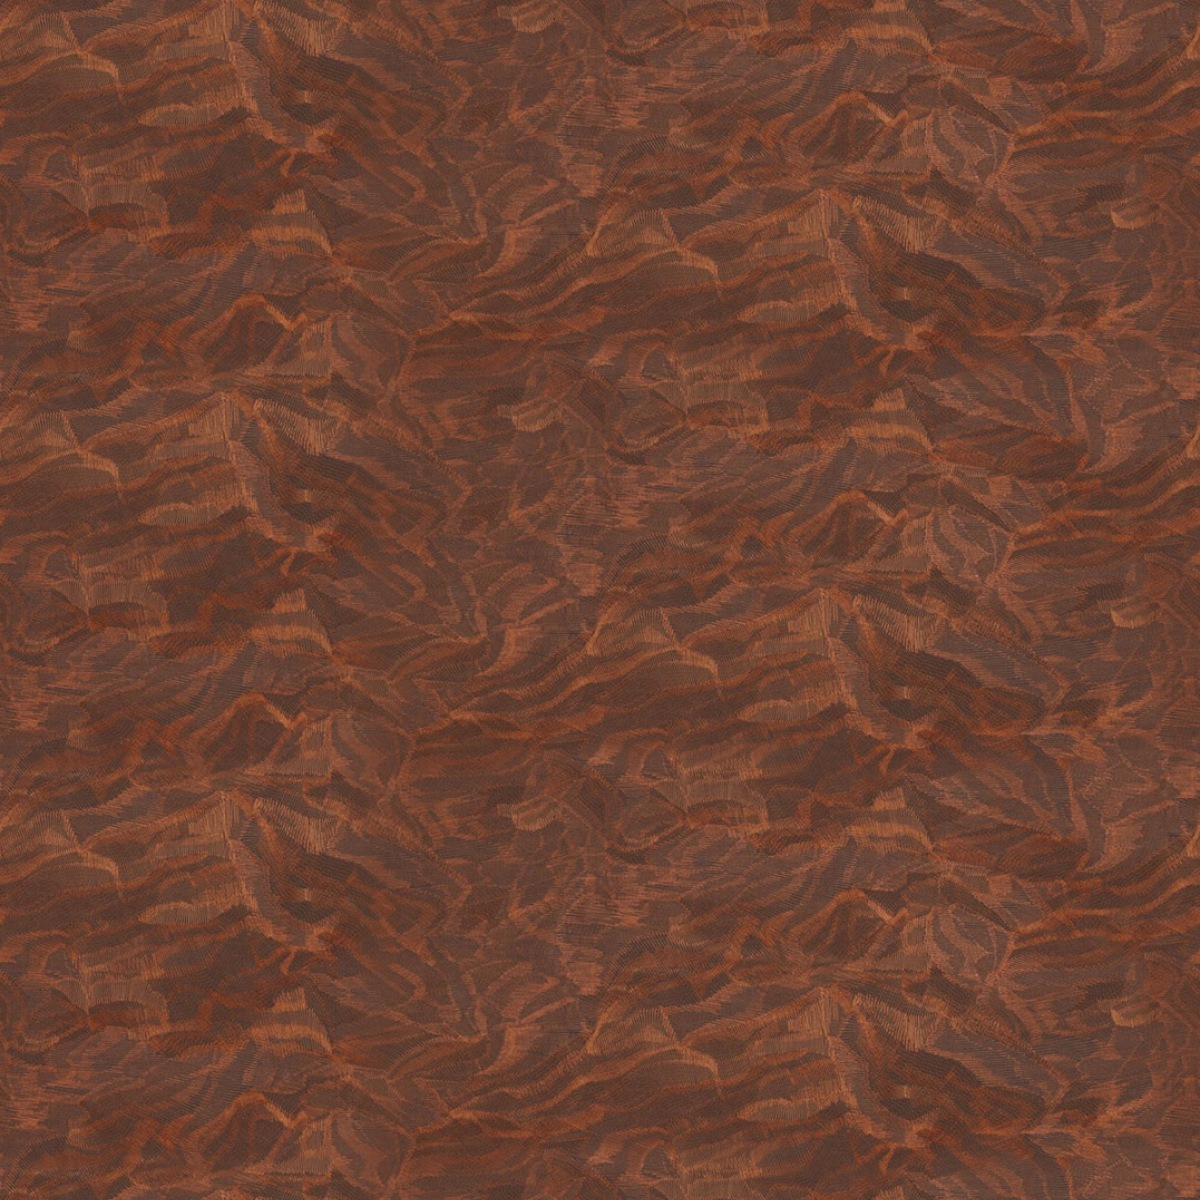 Cirrus Embroidery – Copper